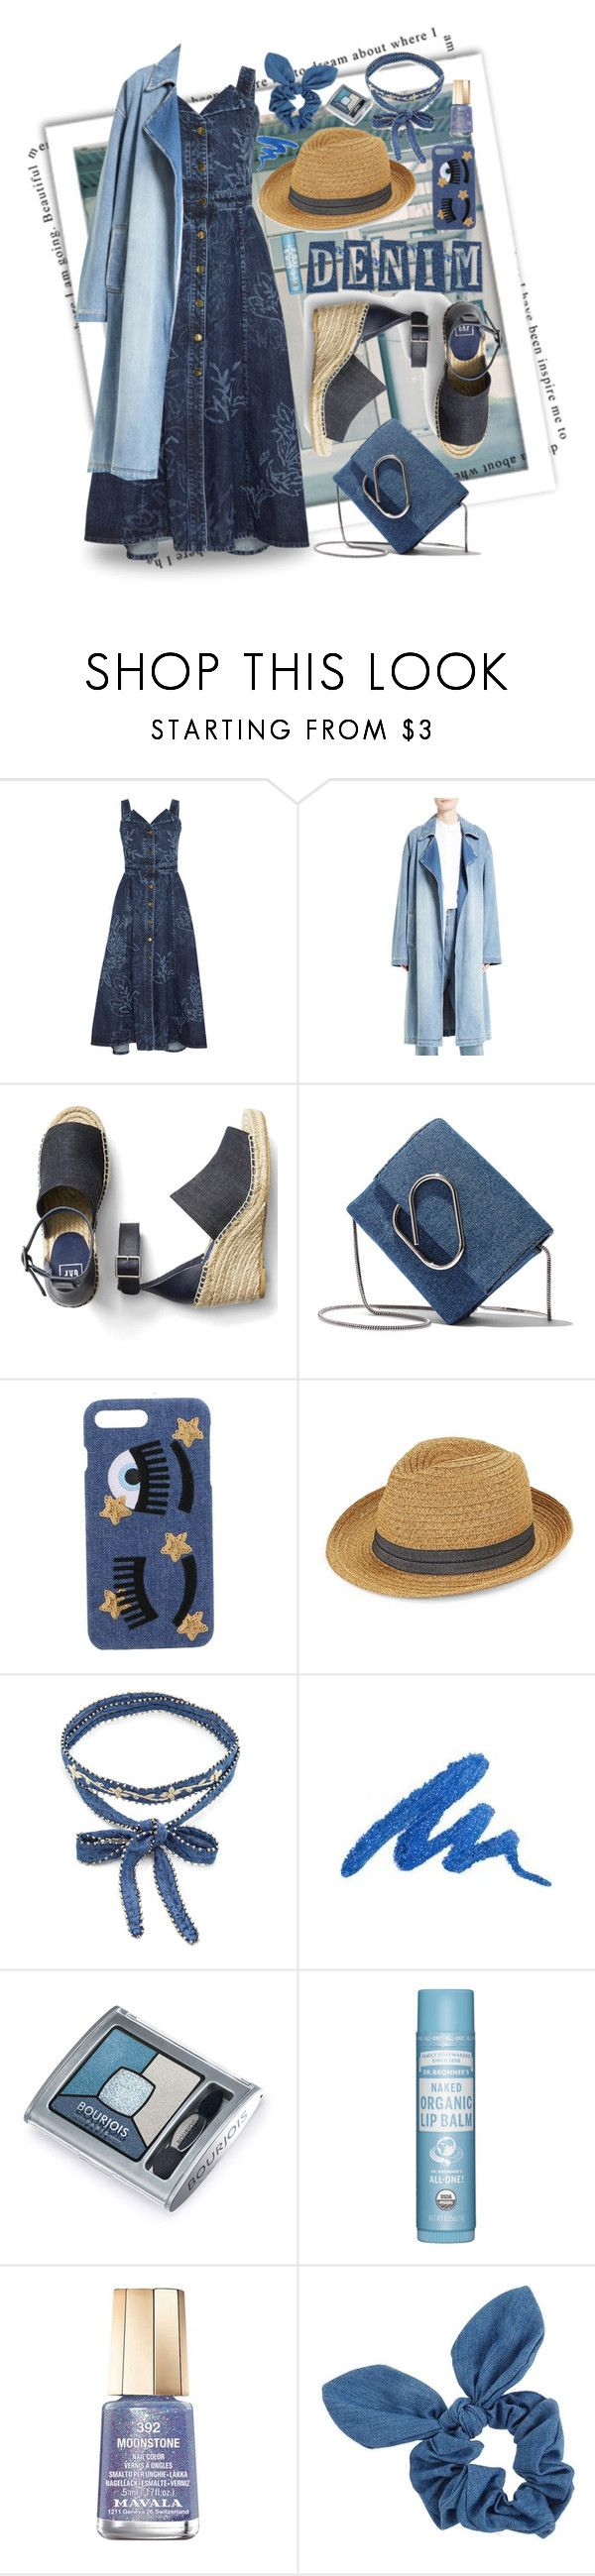 """""""BLUE DENIM"""" by papee ❤ liked on Polyvore featuring Peter Pilotto, Robert Rodriguez, Gap, 3.1 Phillip Lim, Chiara Ferragni, August Hat, Chan Luu, Urban Decay, Bourjois and Mavala"""